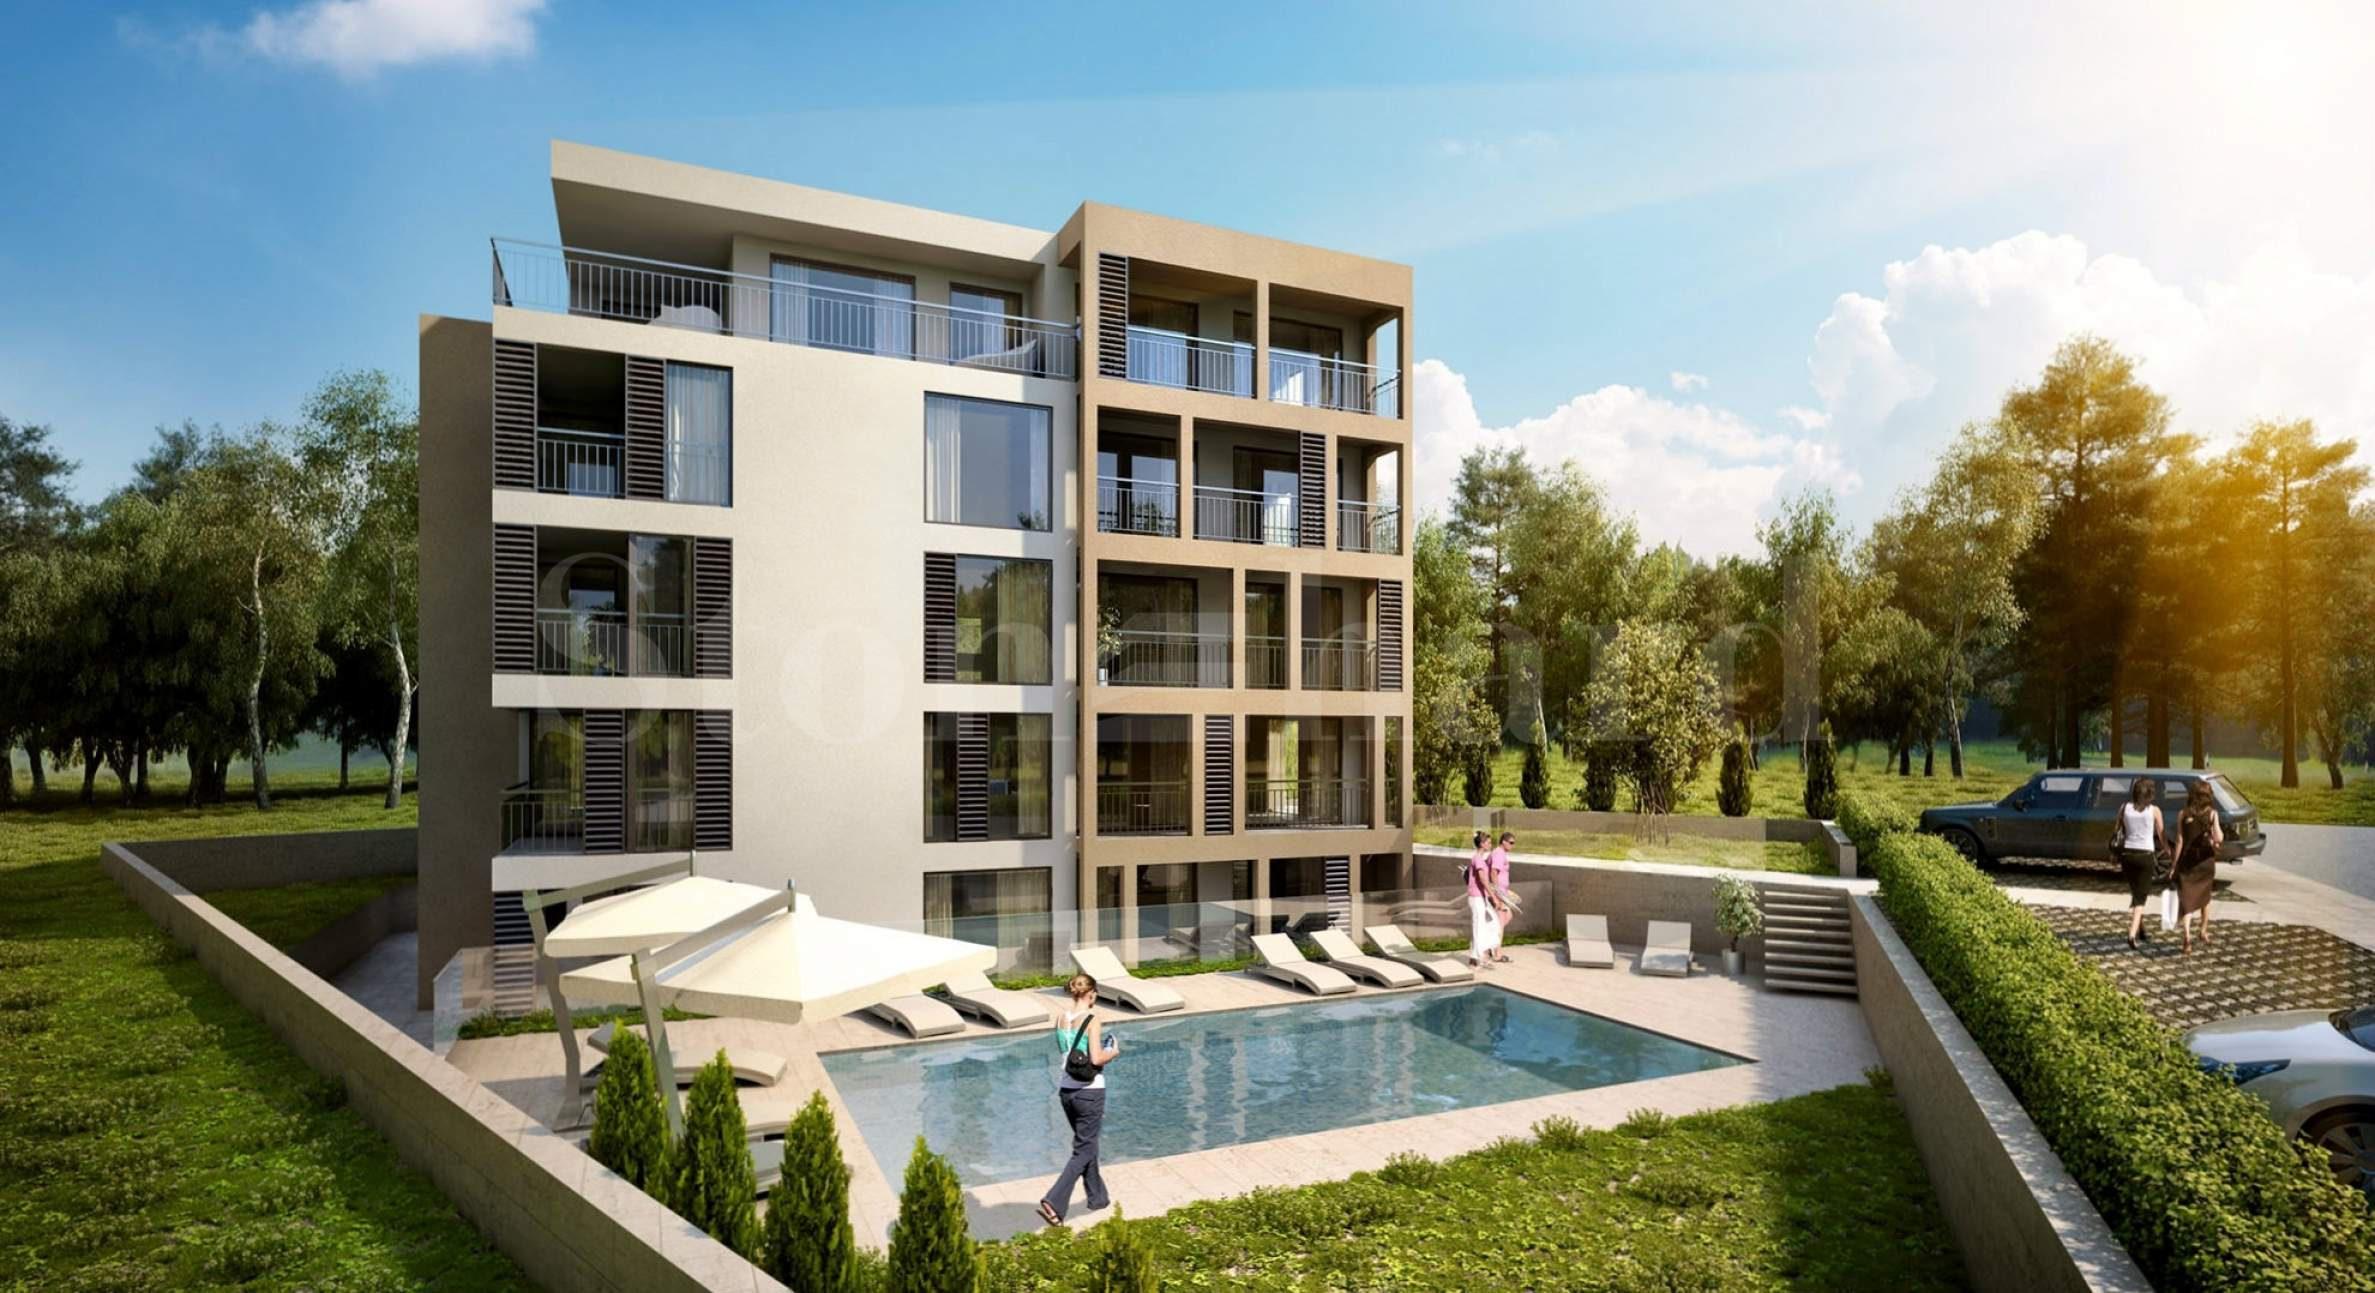 Turn-key apartments in a new gated complex2 - Stonehard